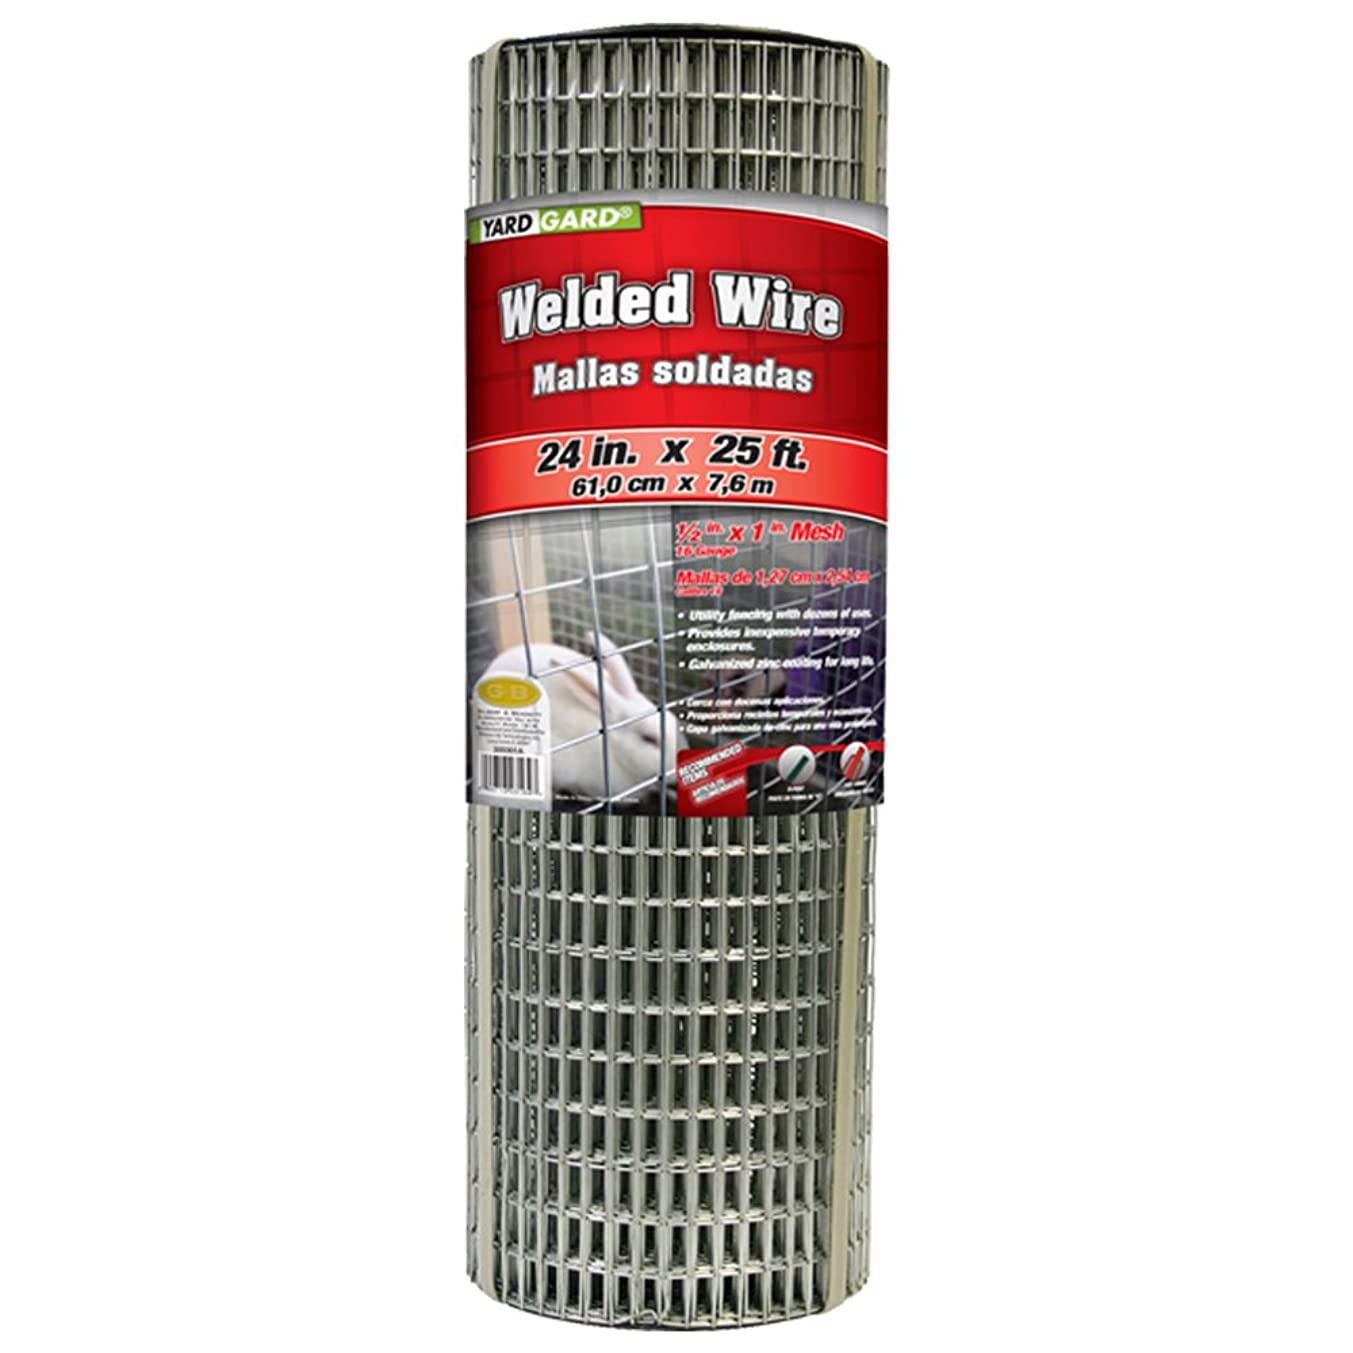 YARDGARD 309301A 24 inch by 25 foot 16 gauge, 1/2 inch by 1 inch mesh galvanized welded wire